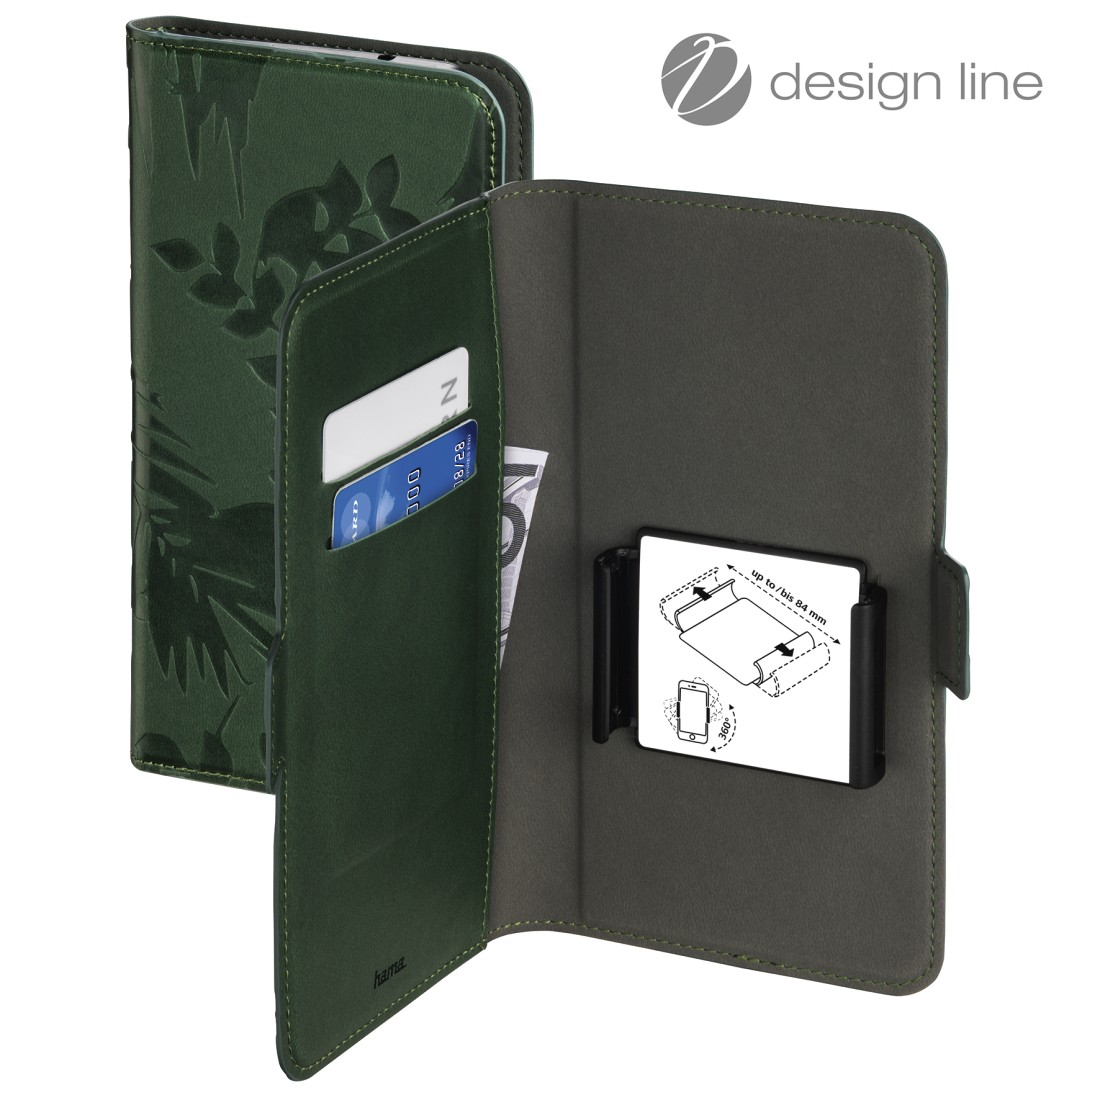 uax Printable Image Logo - Hama, Smart Move - Jungle Leaves Booklet, size XXL (5.1 – 5.8), dark green